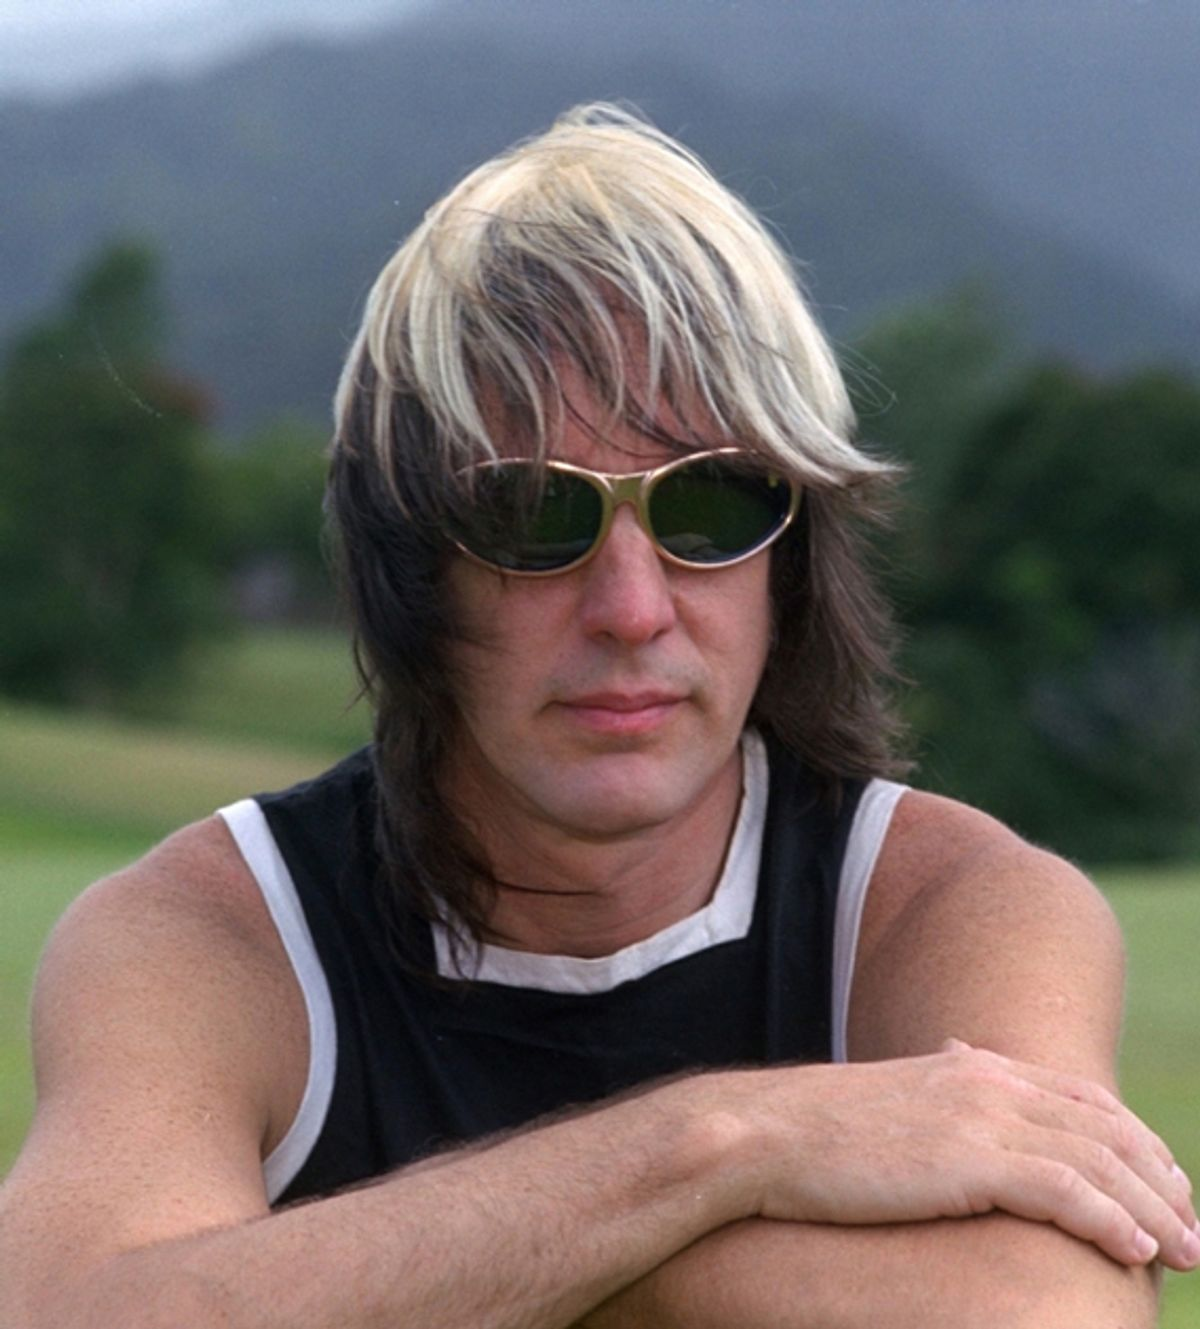 Todd Rundgren to Receive the Les Paul Award at 29th Annual TEC Awards